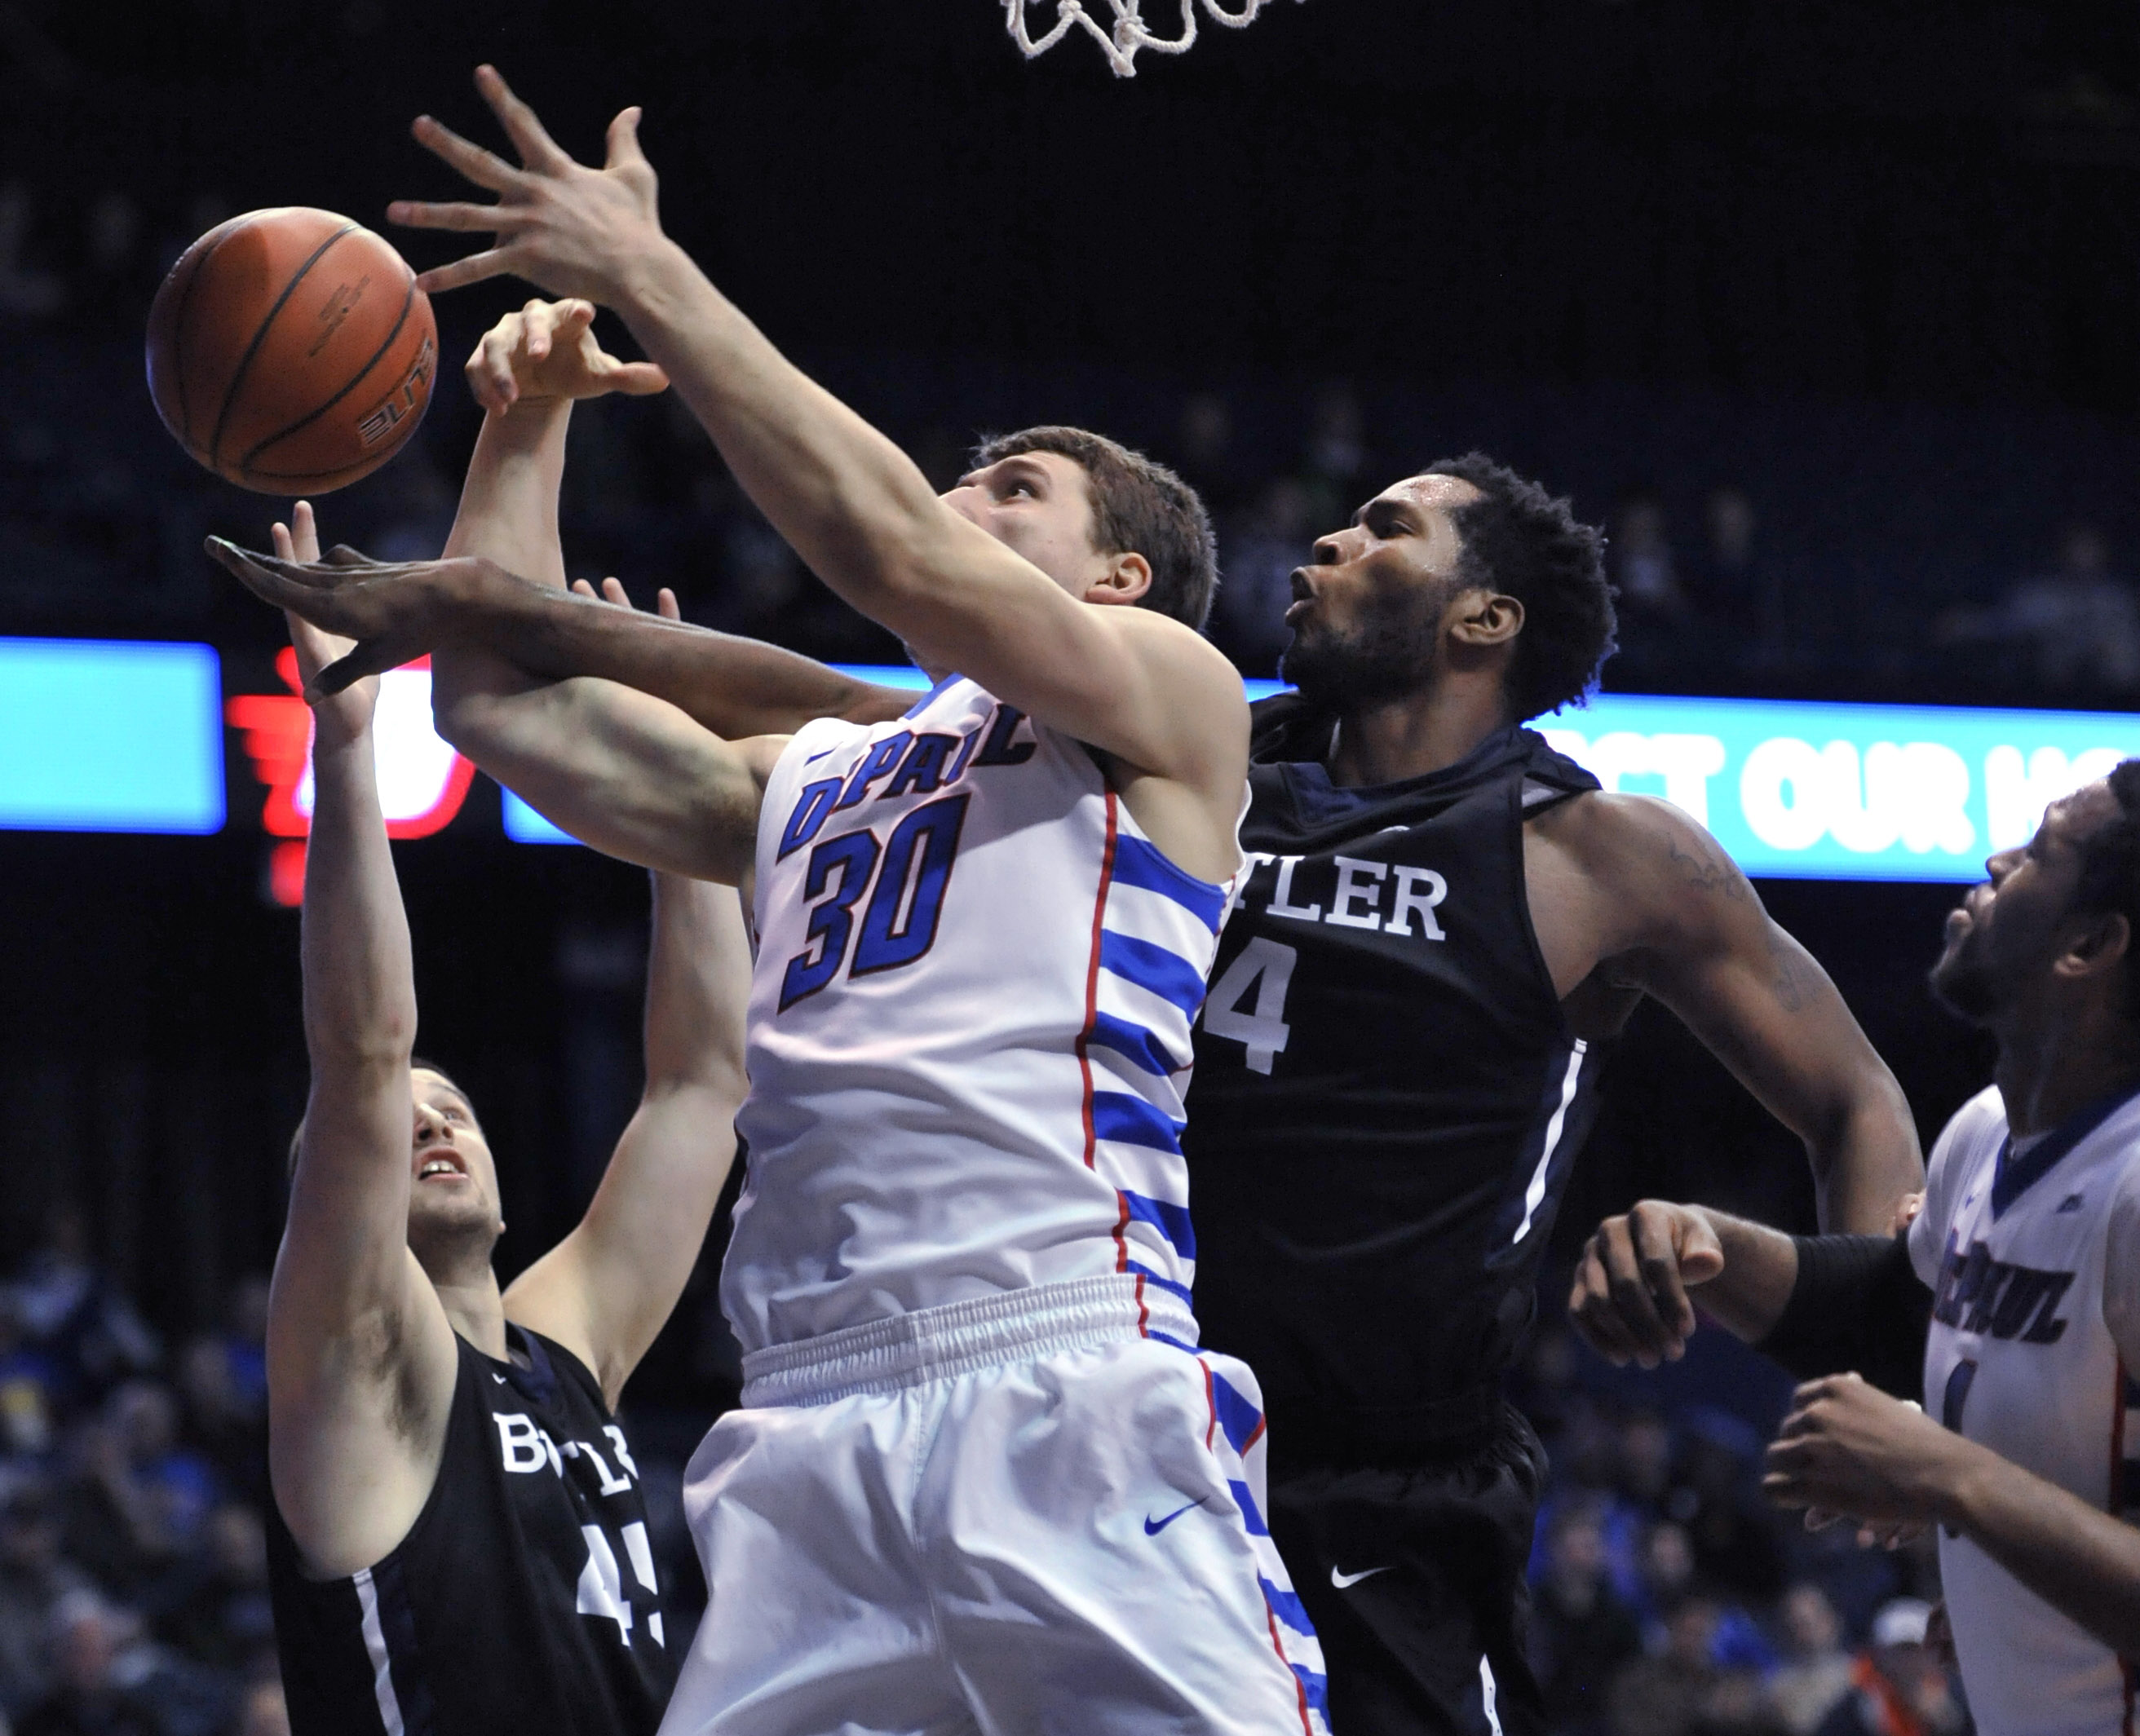 DePaul's Peter Ryckbosch (30), goes up for a rebound against Butler's Tyler Wideman (4), and Andrew Chrabascz (45), while DePaul's Myke Henry (4), looks on during the first half of an NCAA college basketball game, Tuesday, Jan. 5, 2016, in Rosemont, Ill.